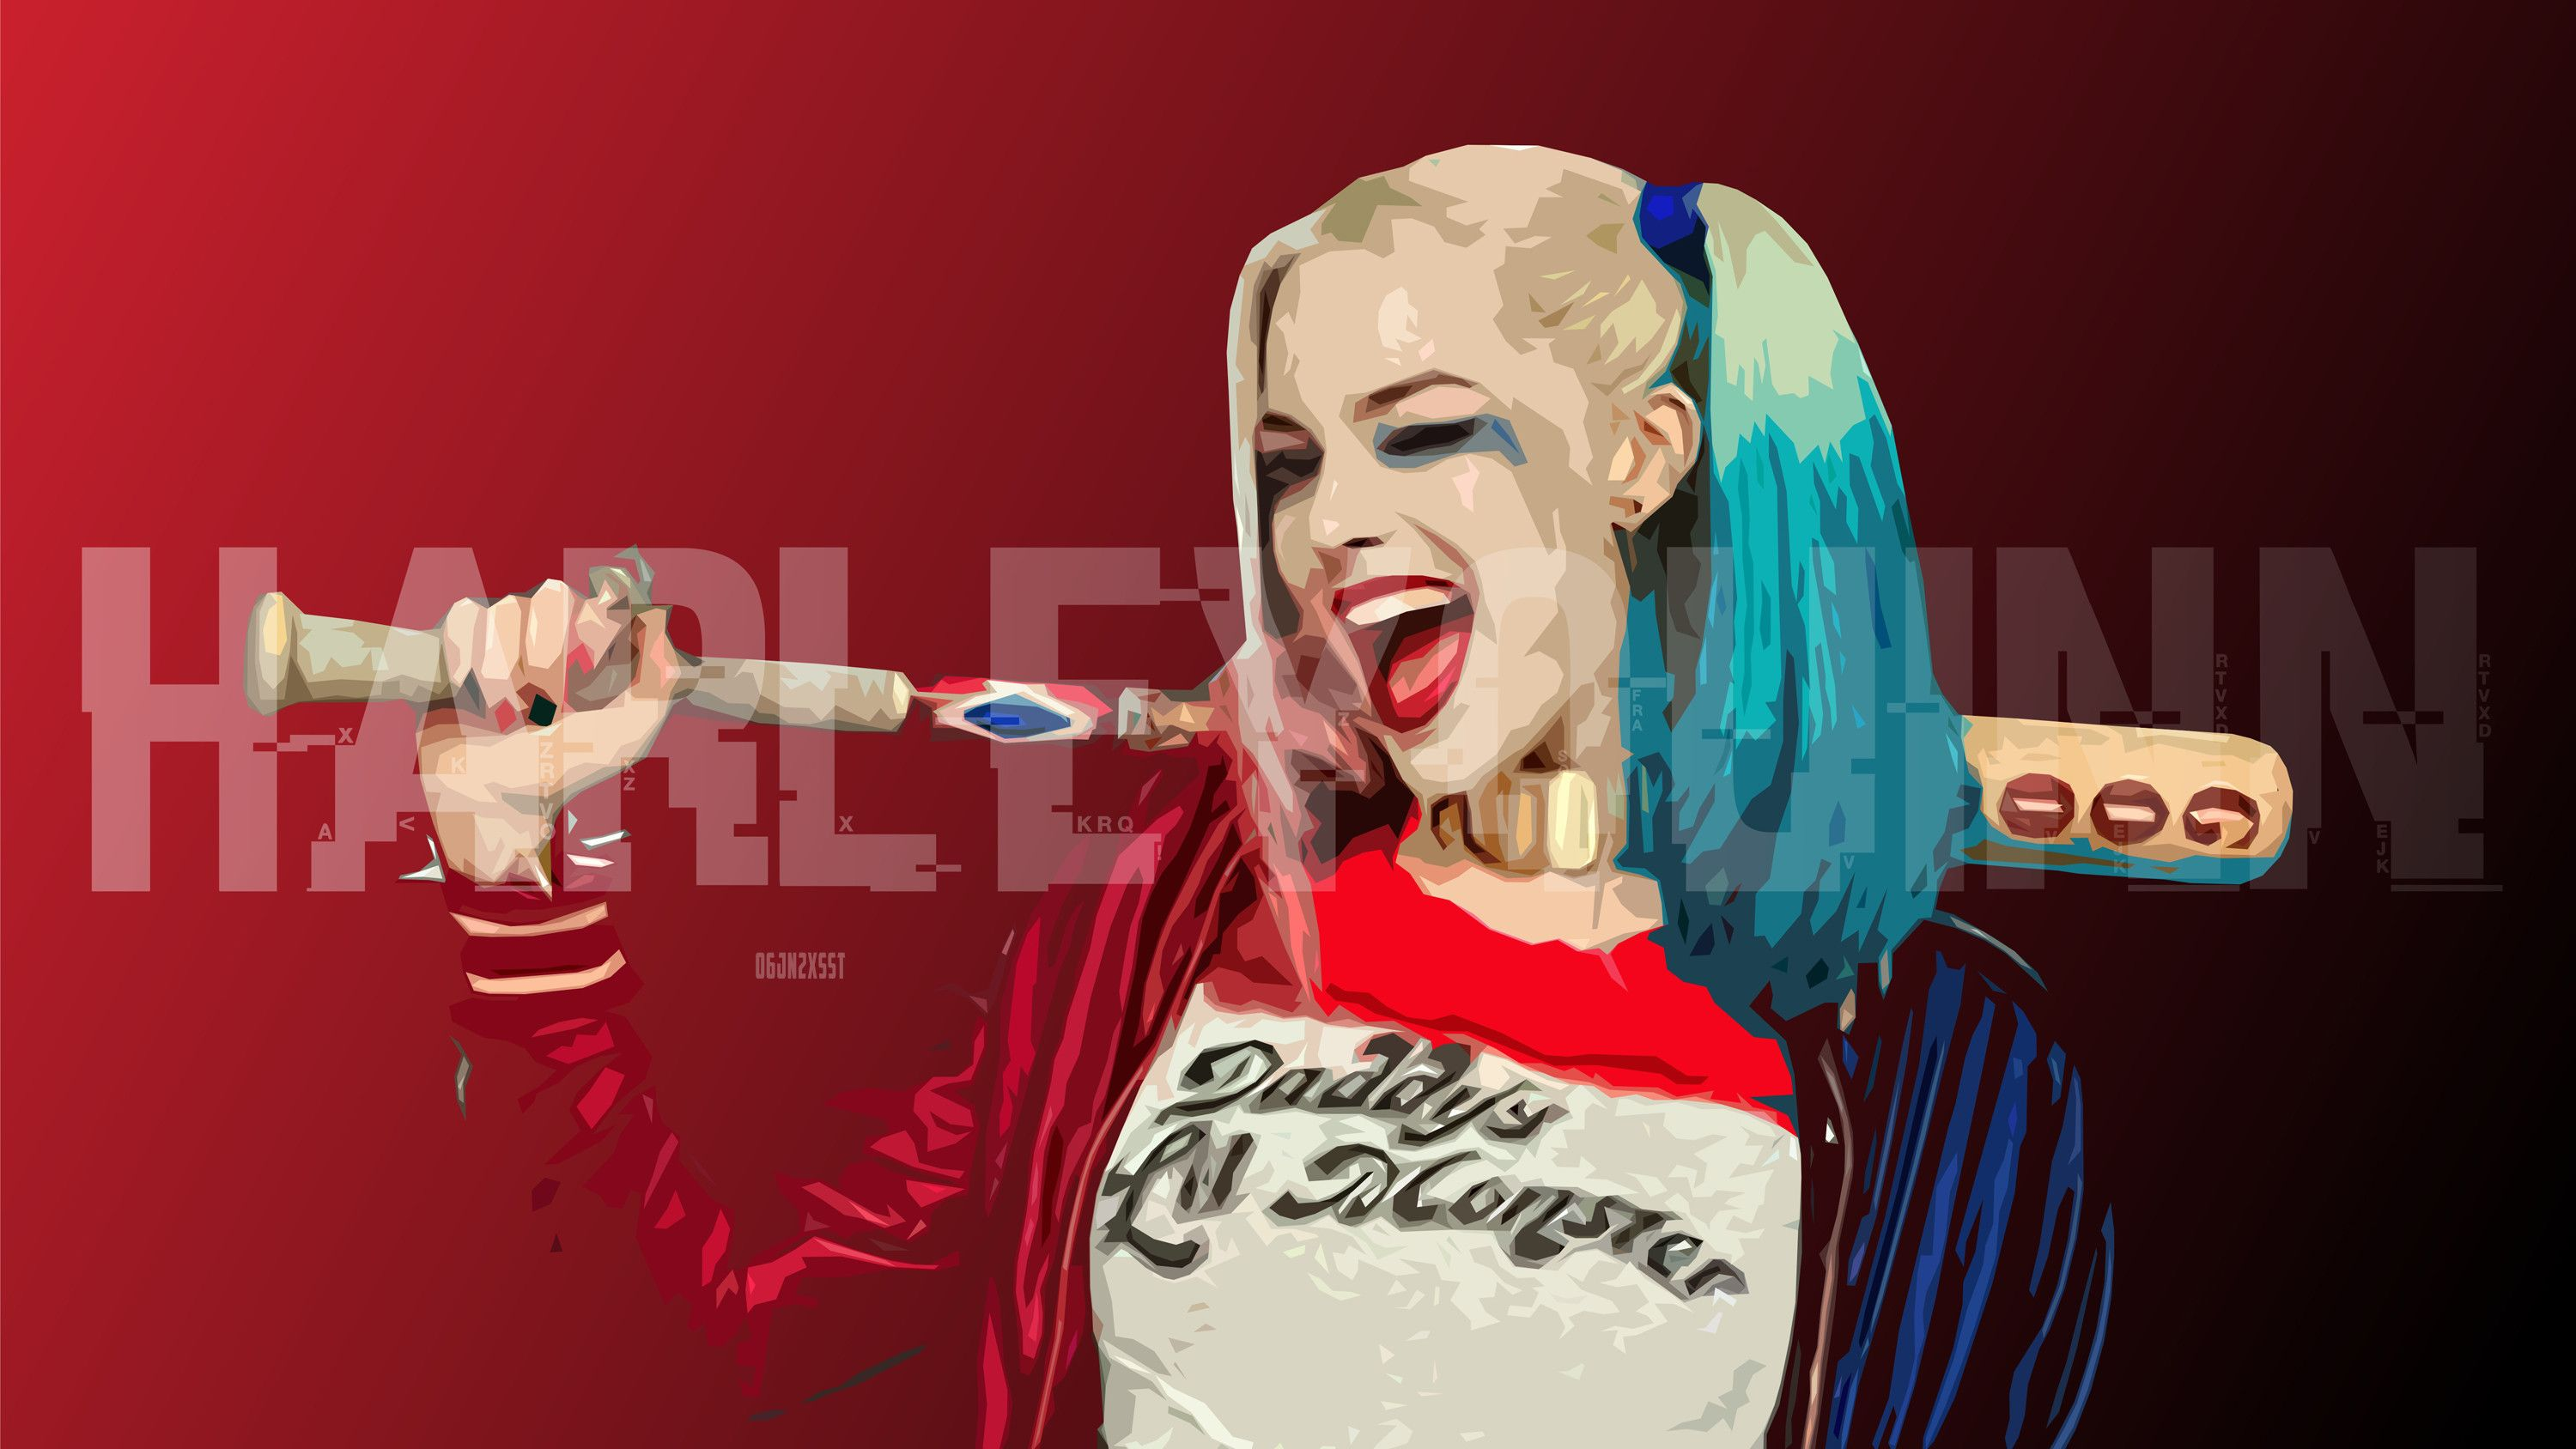 Margot Robbie Harley Quinn Wallpapers Top Free Margot Robbie Harley Quinn Backgrounds Wallpaperaccess